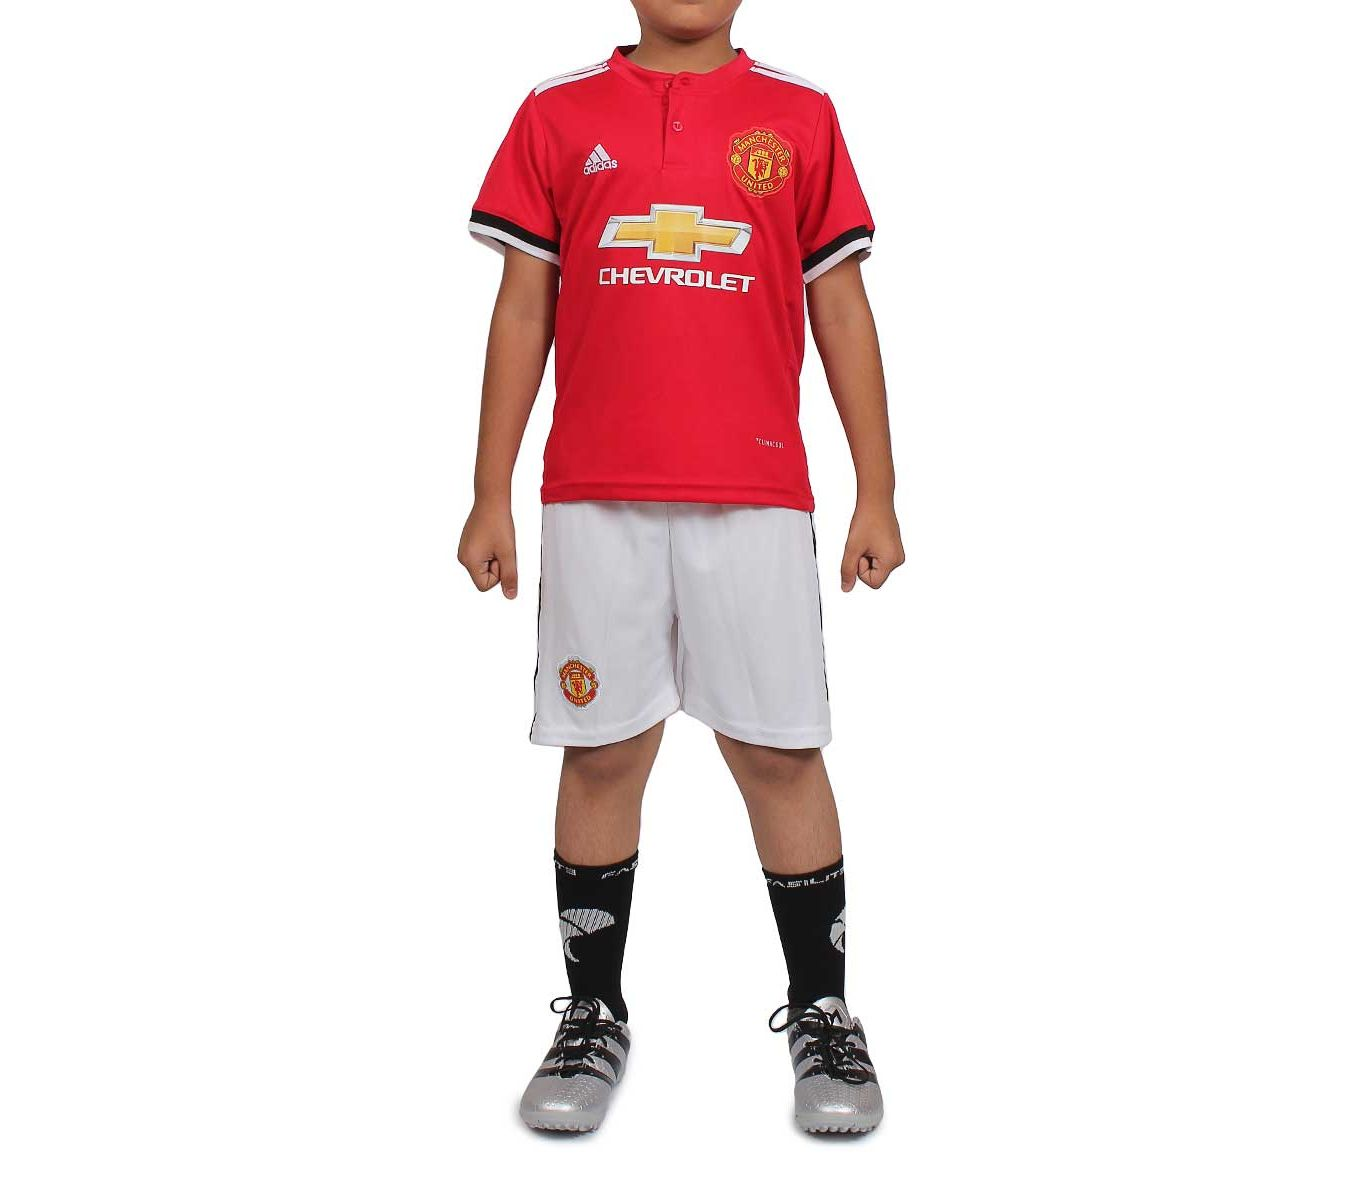 kid s store kids sports fasilite manchester united half sleeves kids home kit 2017 2018 savers pk everything you are looking for fasilite manchester united half sleeves kids home kit 2017 2018